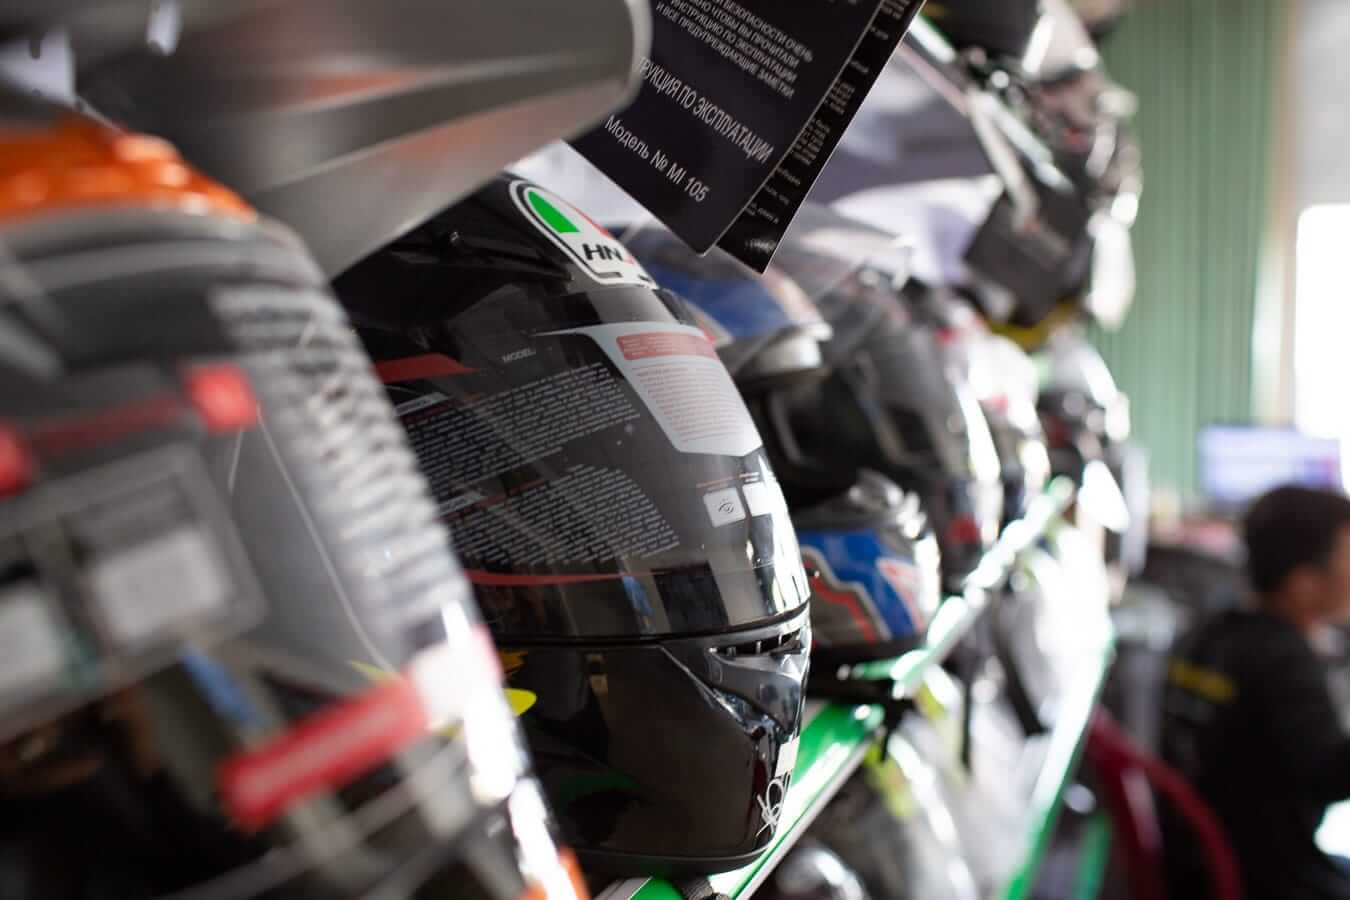 High quality, full-face motorcycle helmets: Motorbike Rental Shops in Hoi An